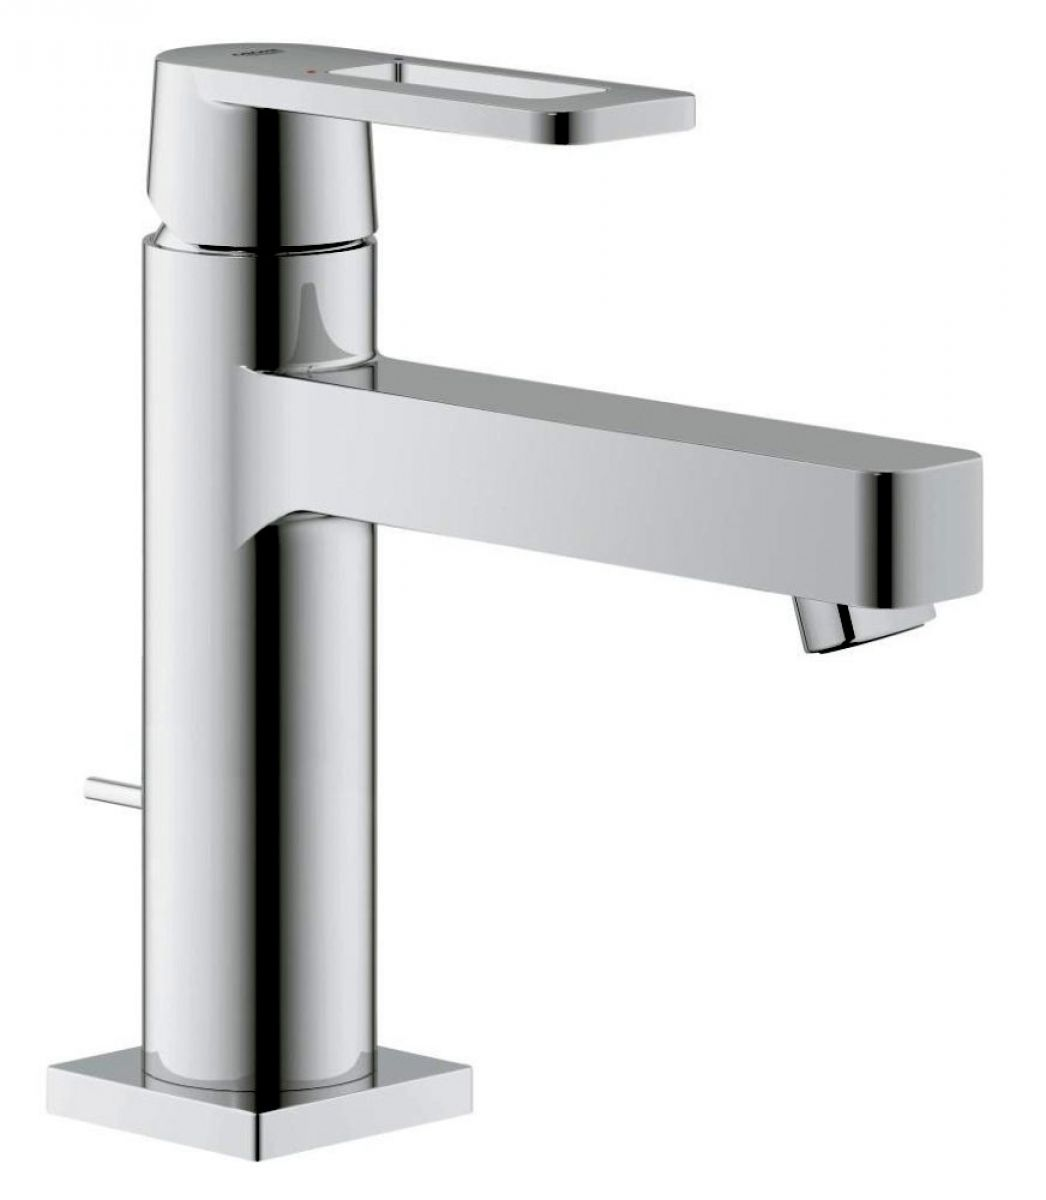 Grohe Quadra Basin Mixer Tap : UK Bathrooms